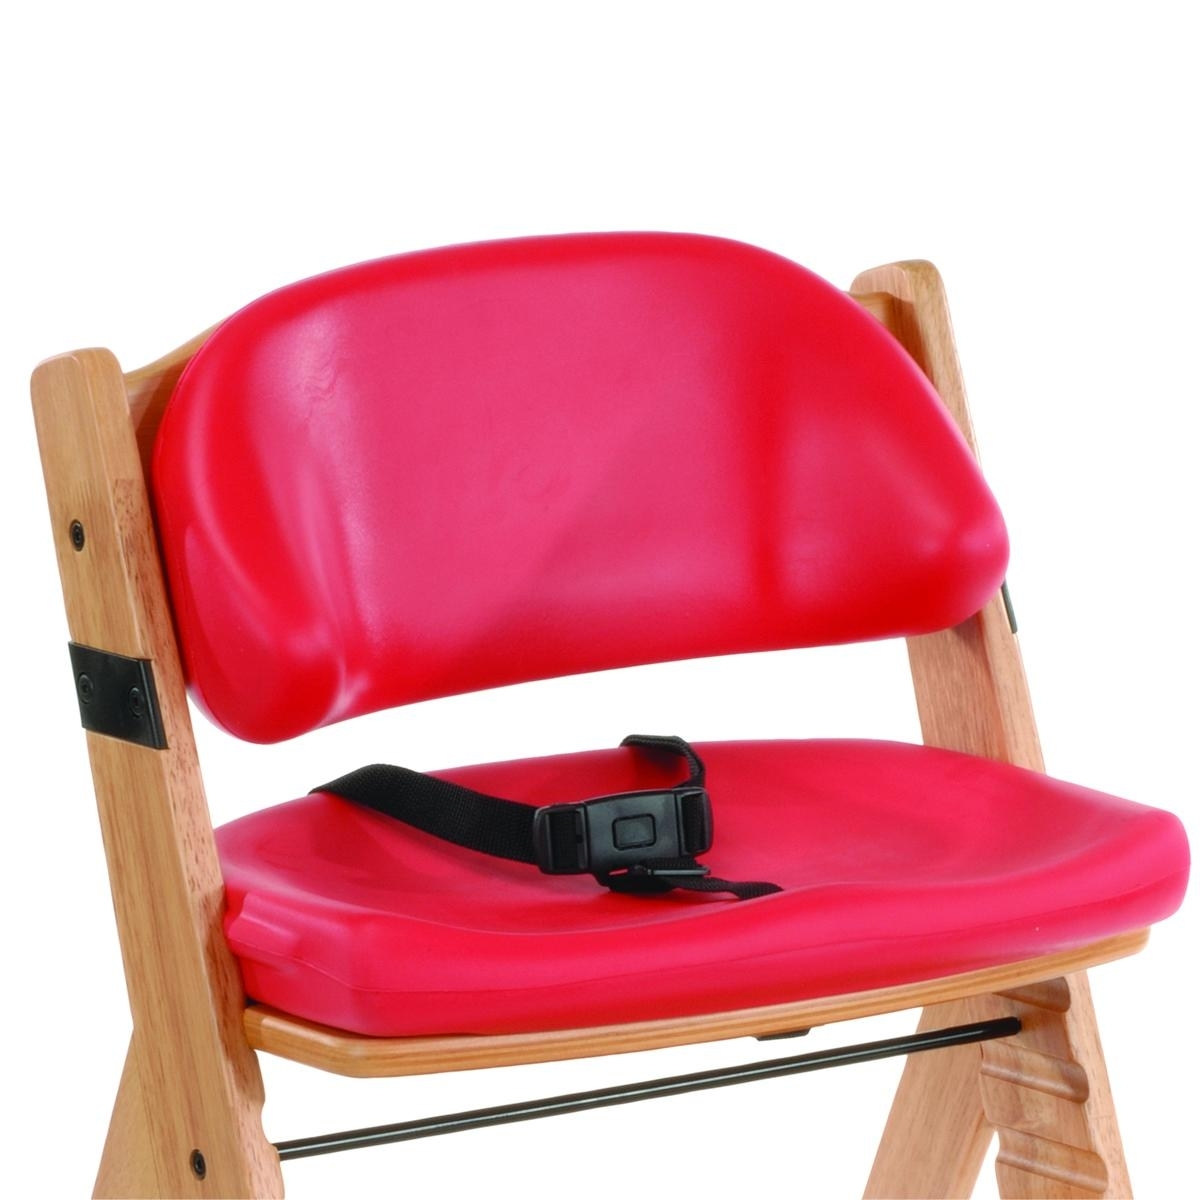 Special Tomato Soft-touch Booster Seat; Cherry - 30-3450r - Special Needs Positioning Mobility Rolls & Wedges 30-3450R